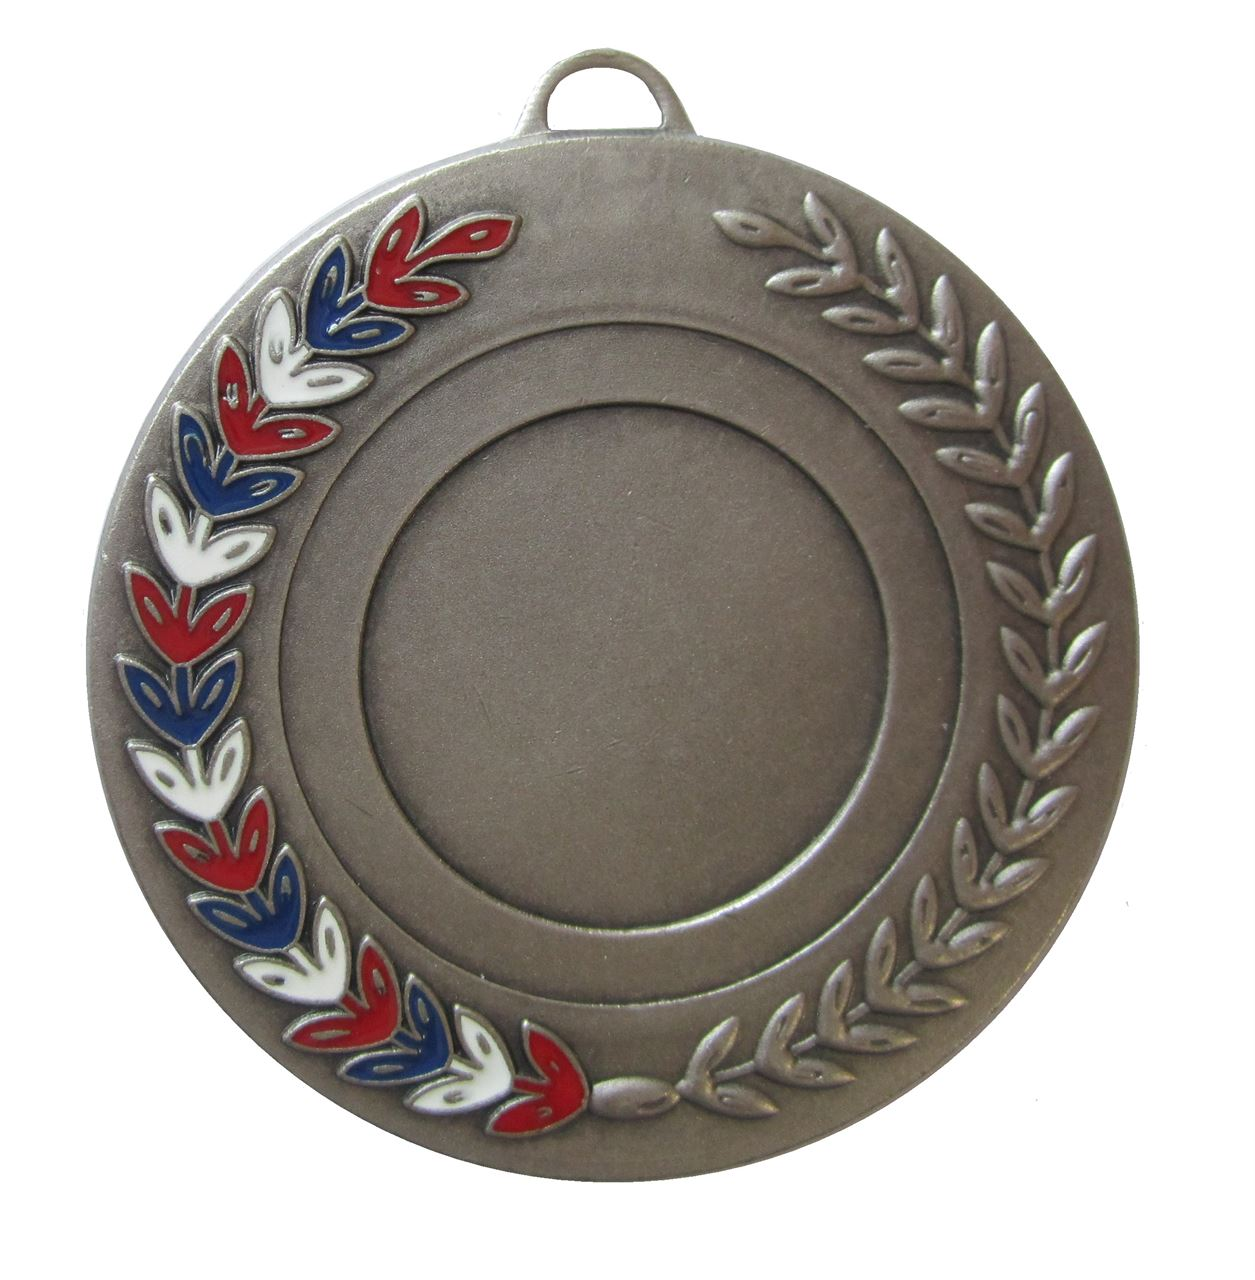 Silver Red, White & Blue Enamel Laurel Medal (size: 50mm) - 5770